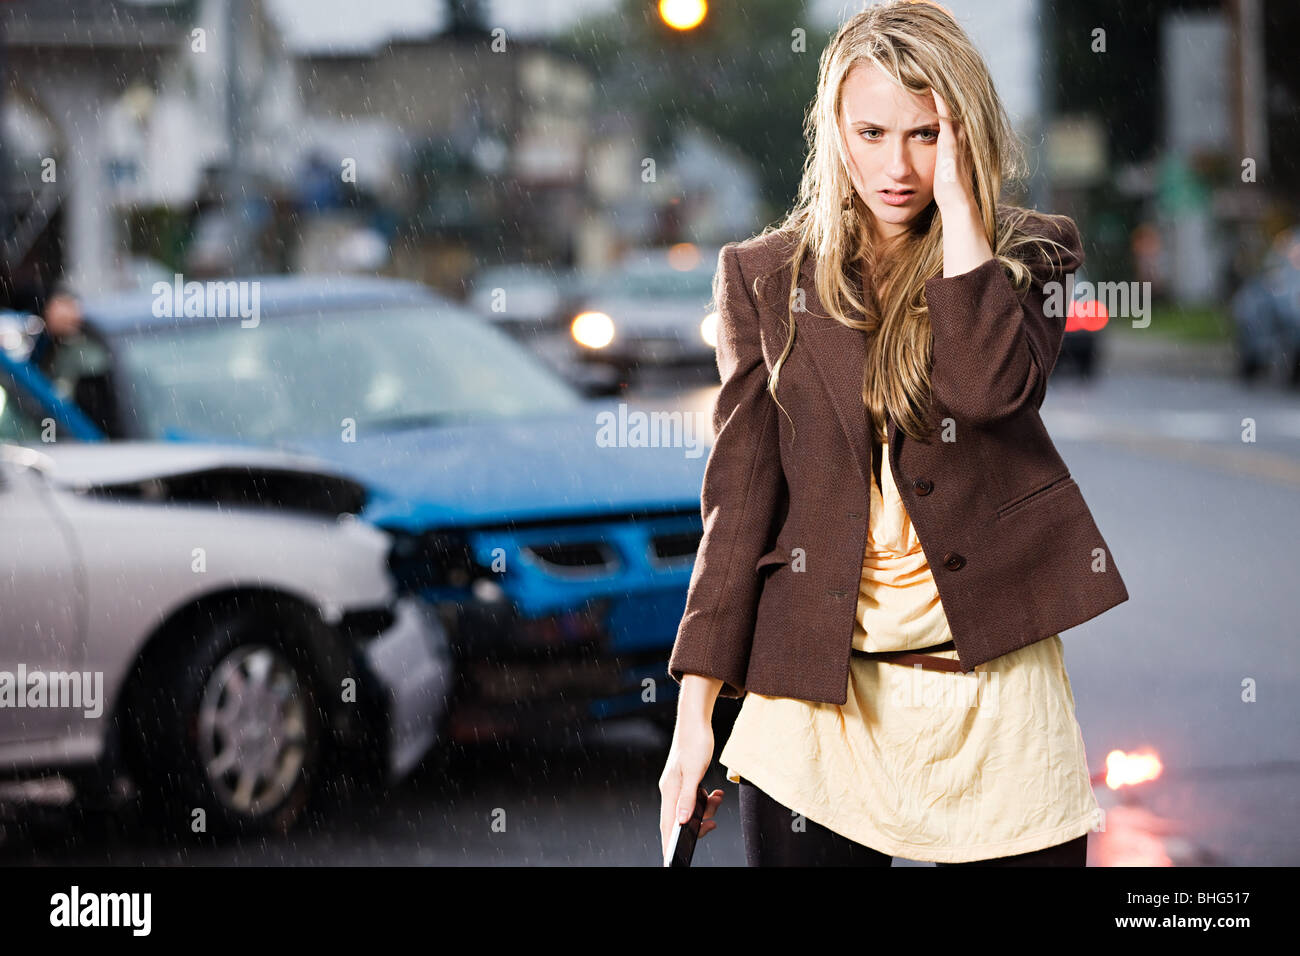 Young woman who has been in an accident - Stock Image